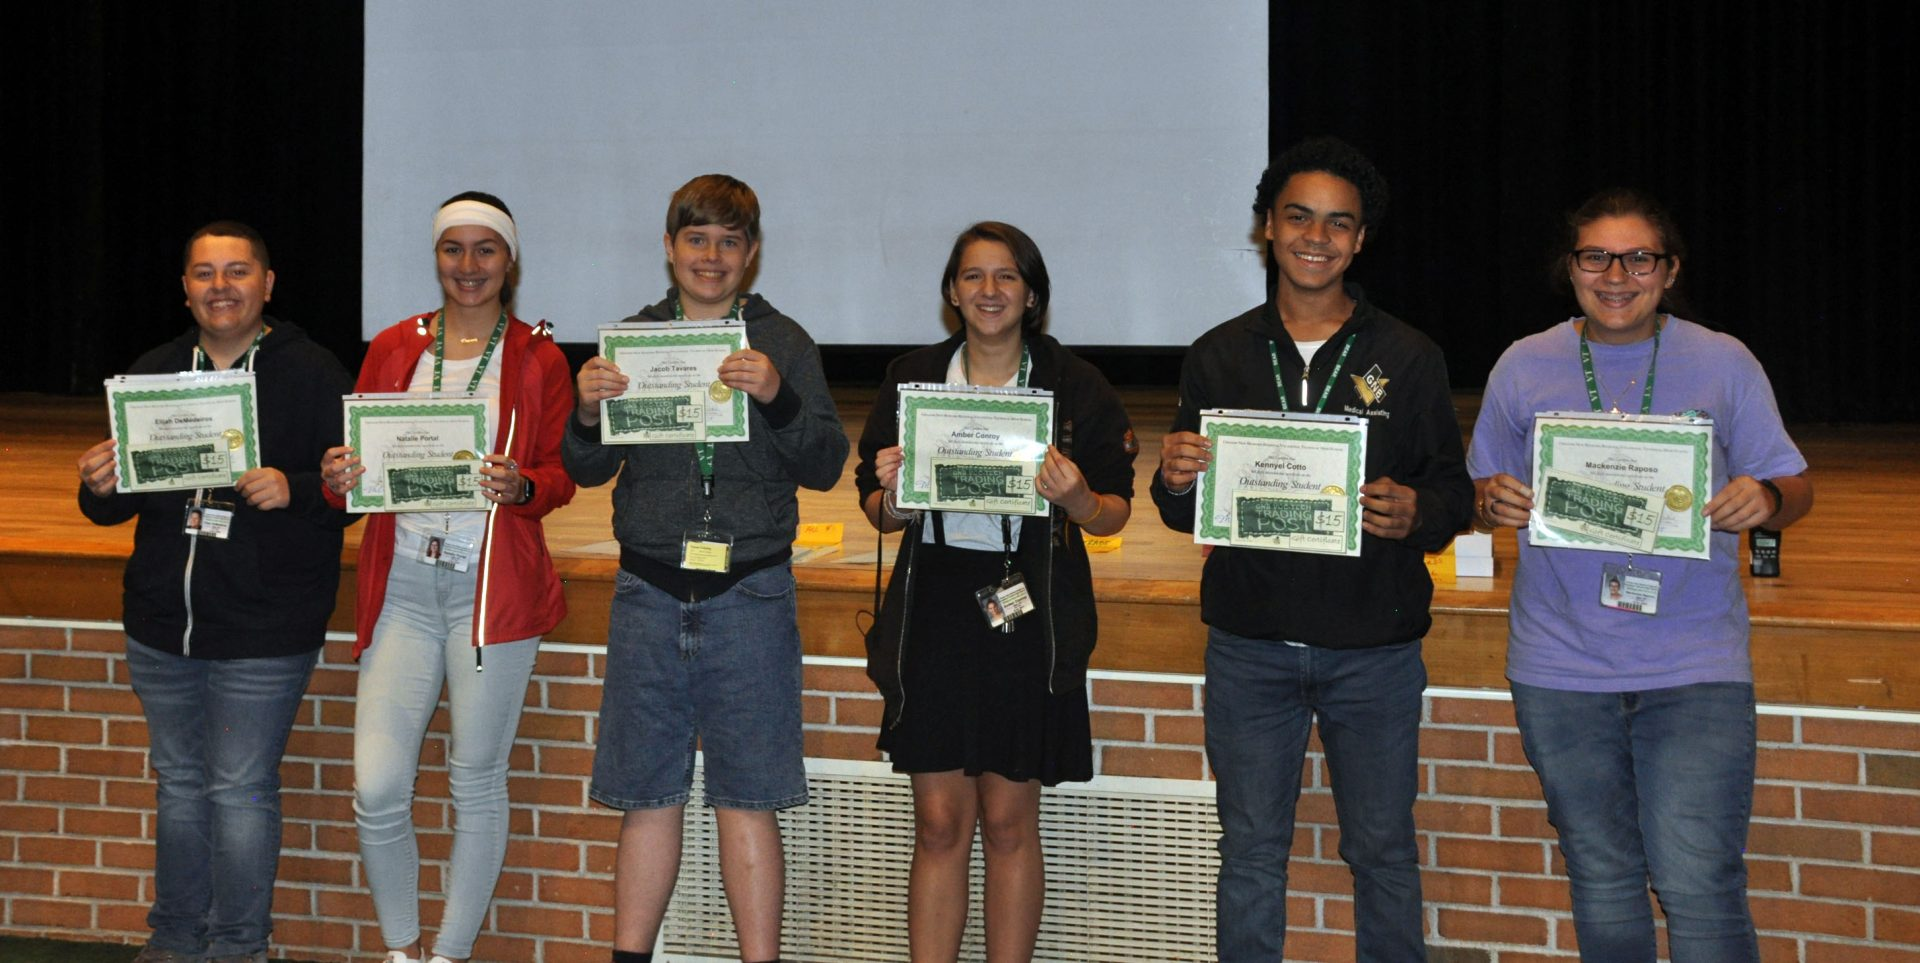 The 6 highest honor freshman students holding their awards